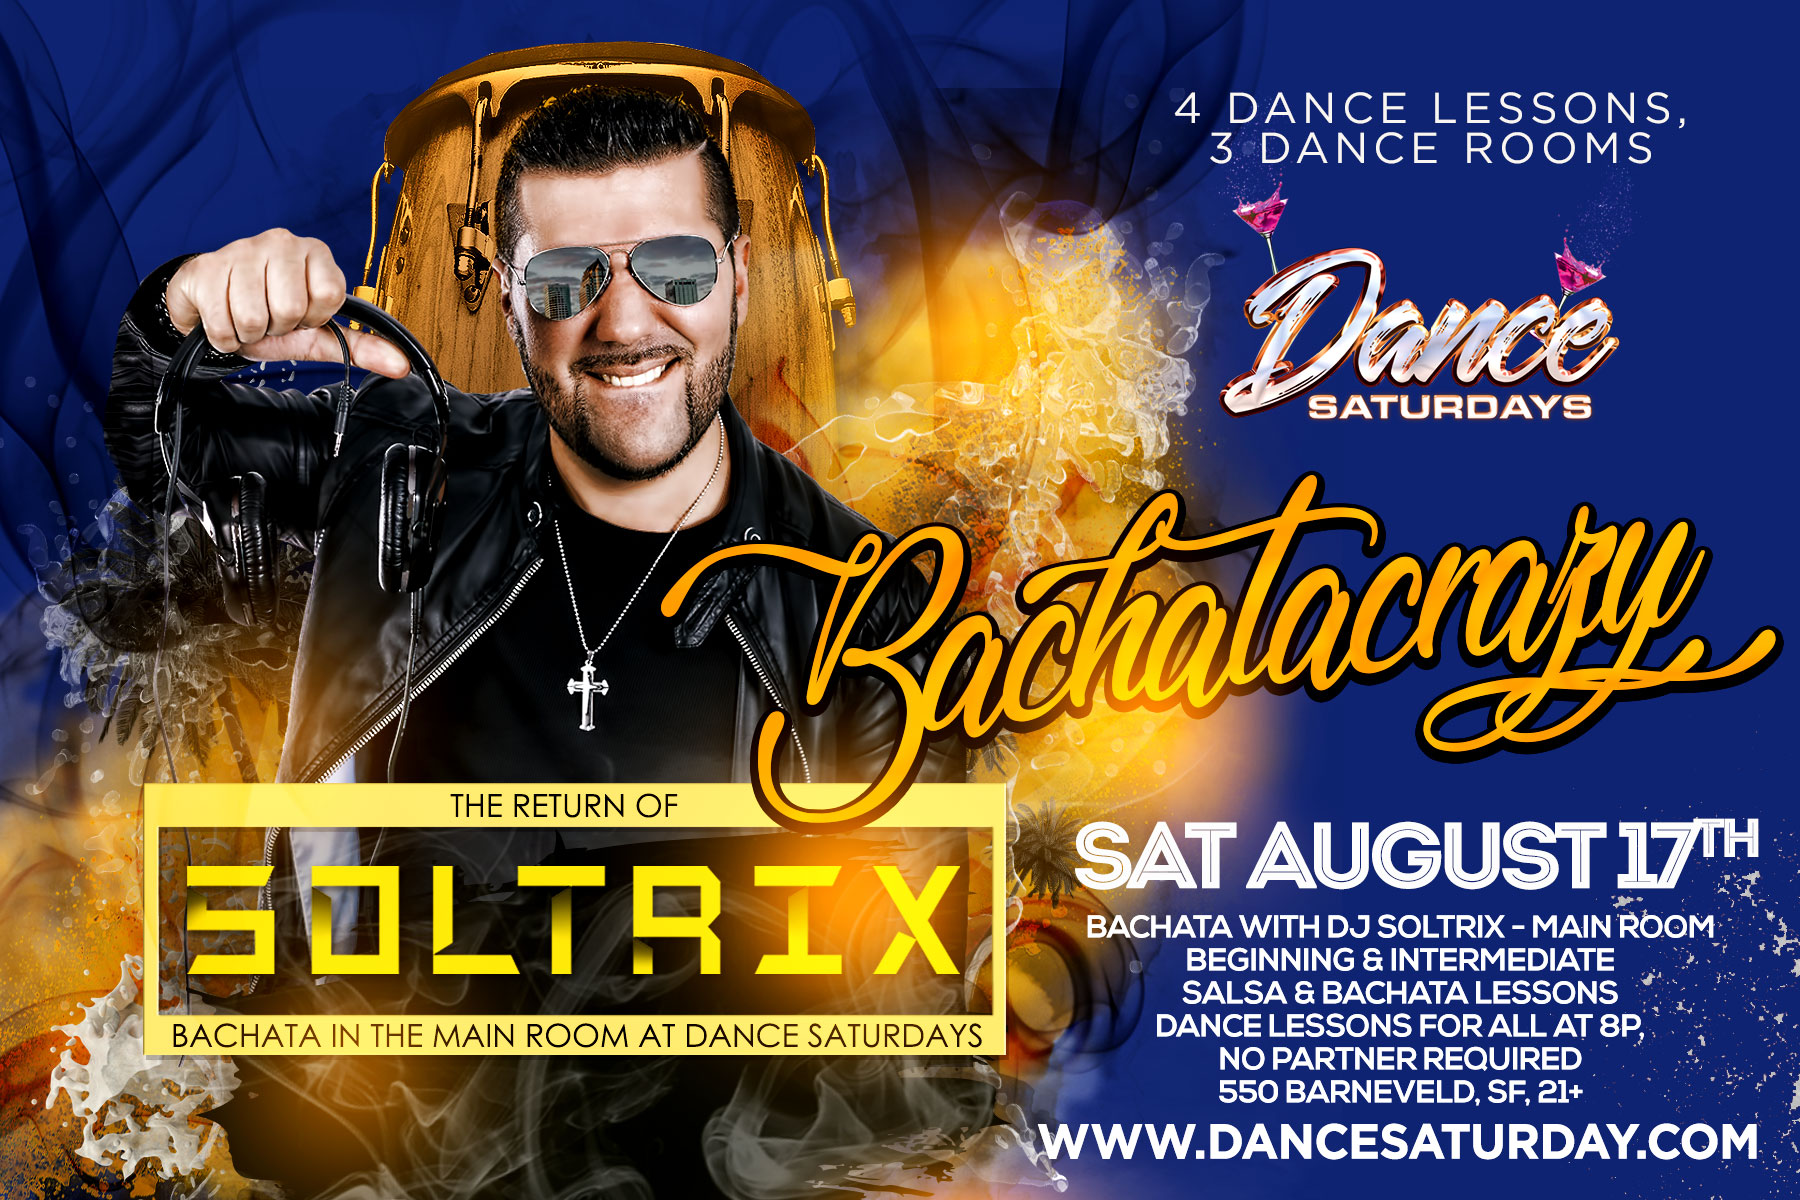 Dance Saturdays with DJ SOLTRIX Bachata in the Main Room